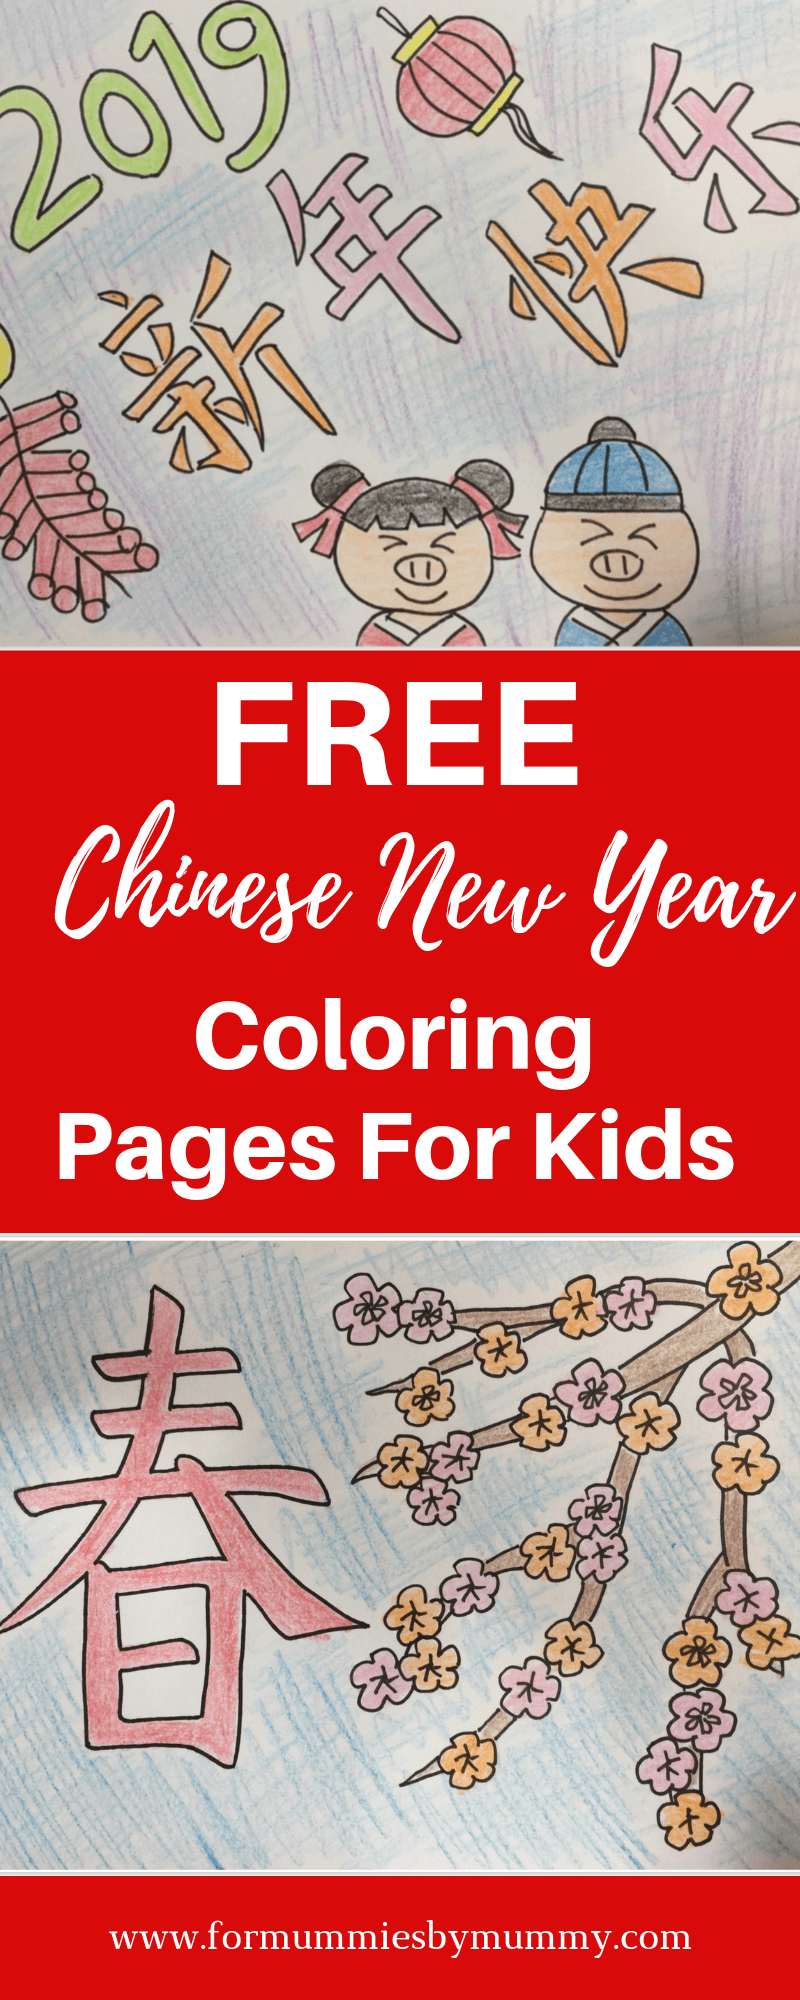 Free Chinese New Year coloring pages for kids. #freeprintables #coloringpages #toddleractivities #cny2019